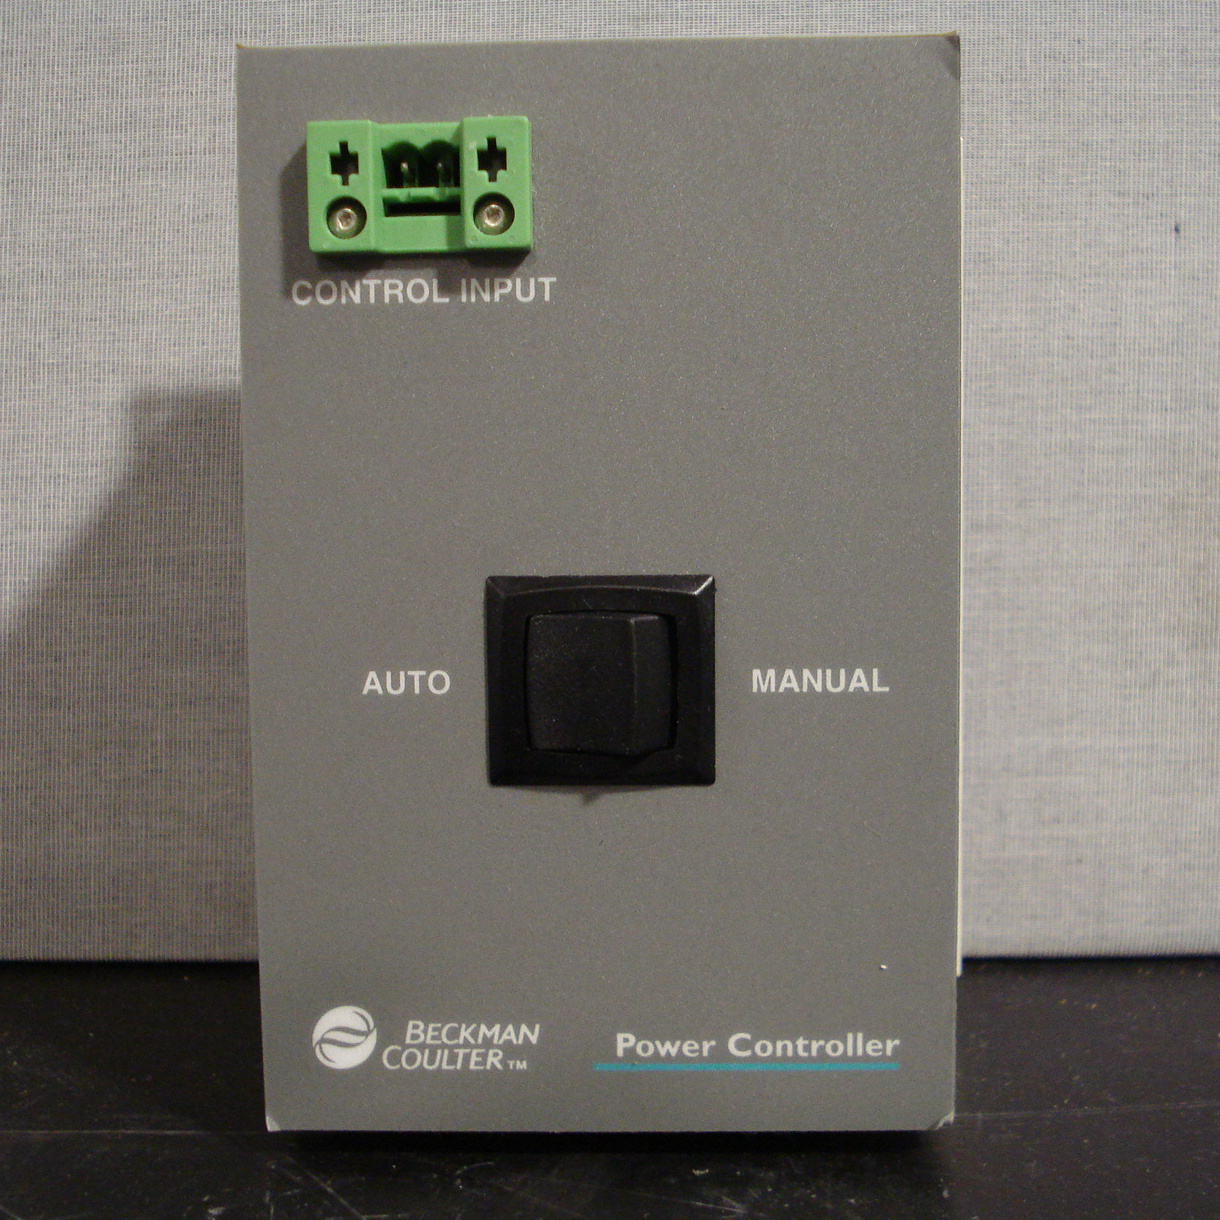 Beckman Coulter Power Controller Model 041-03-00097 Image